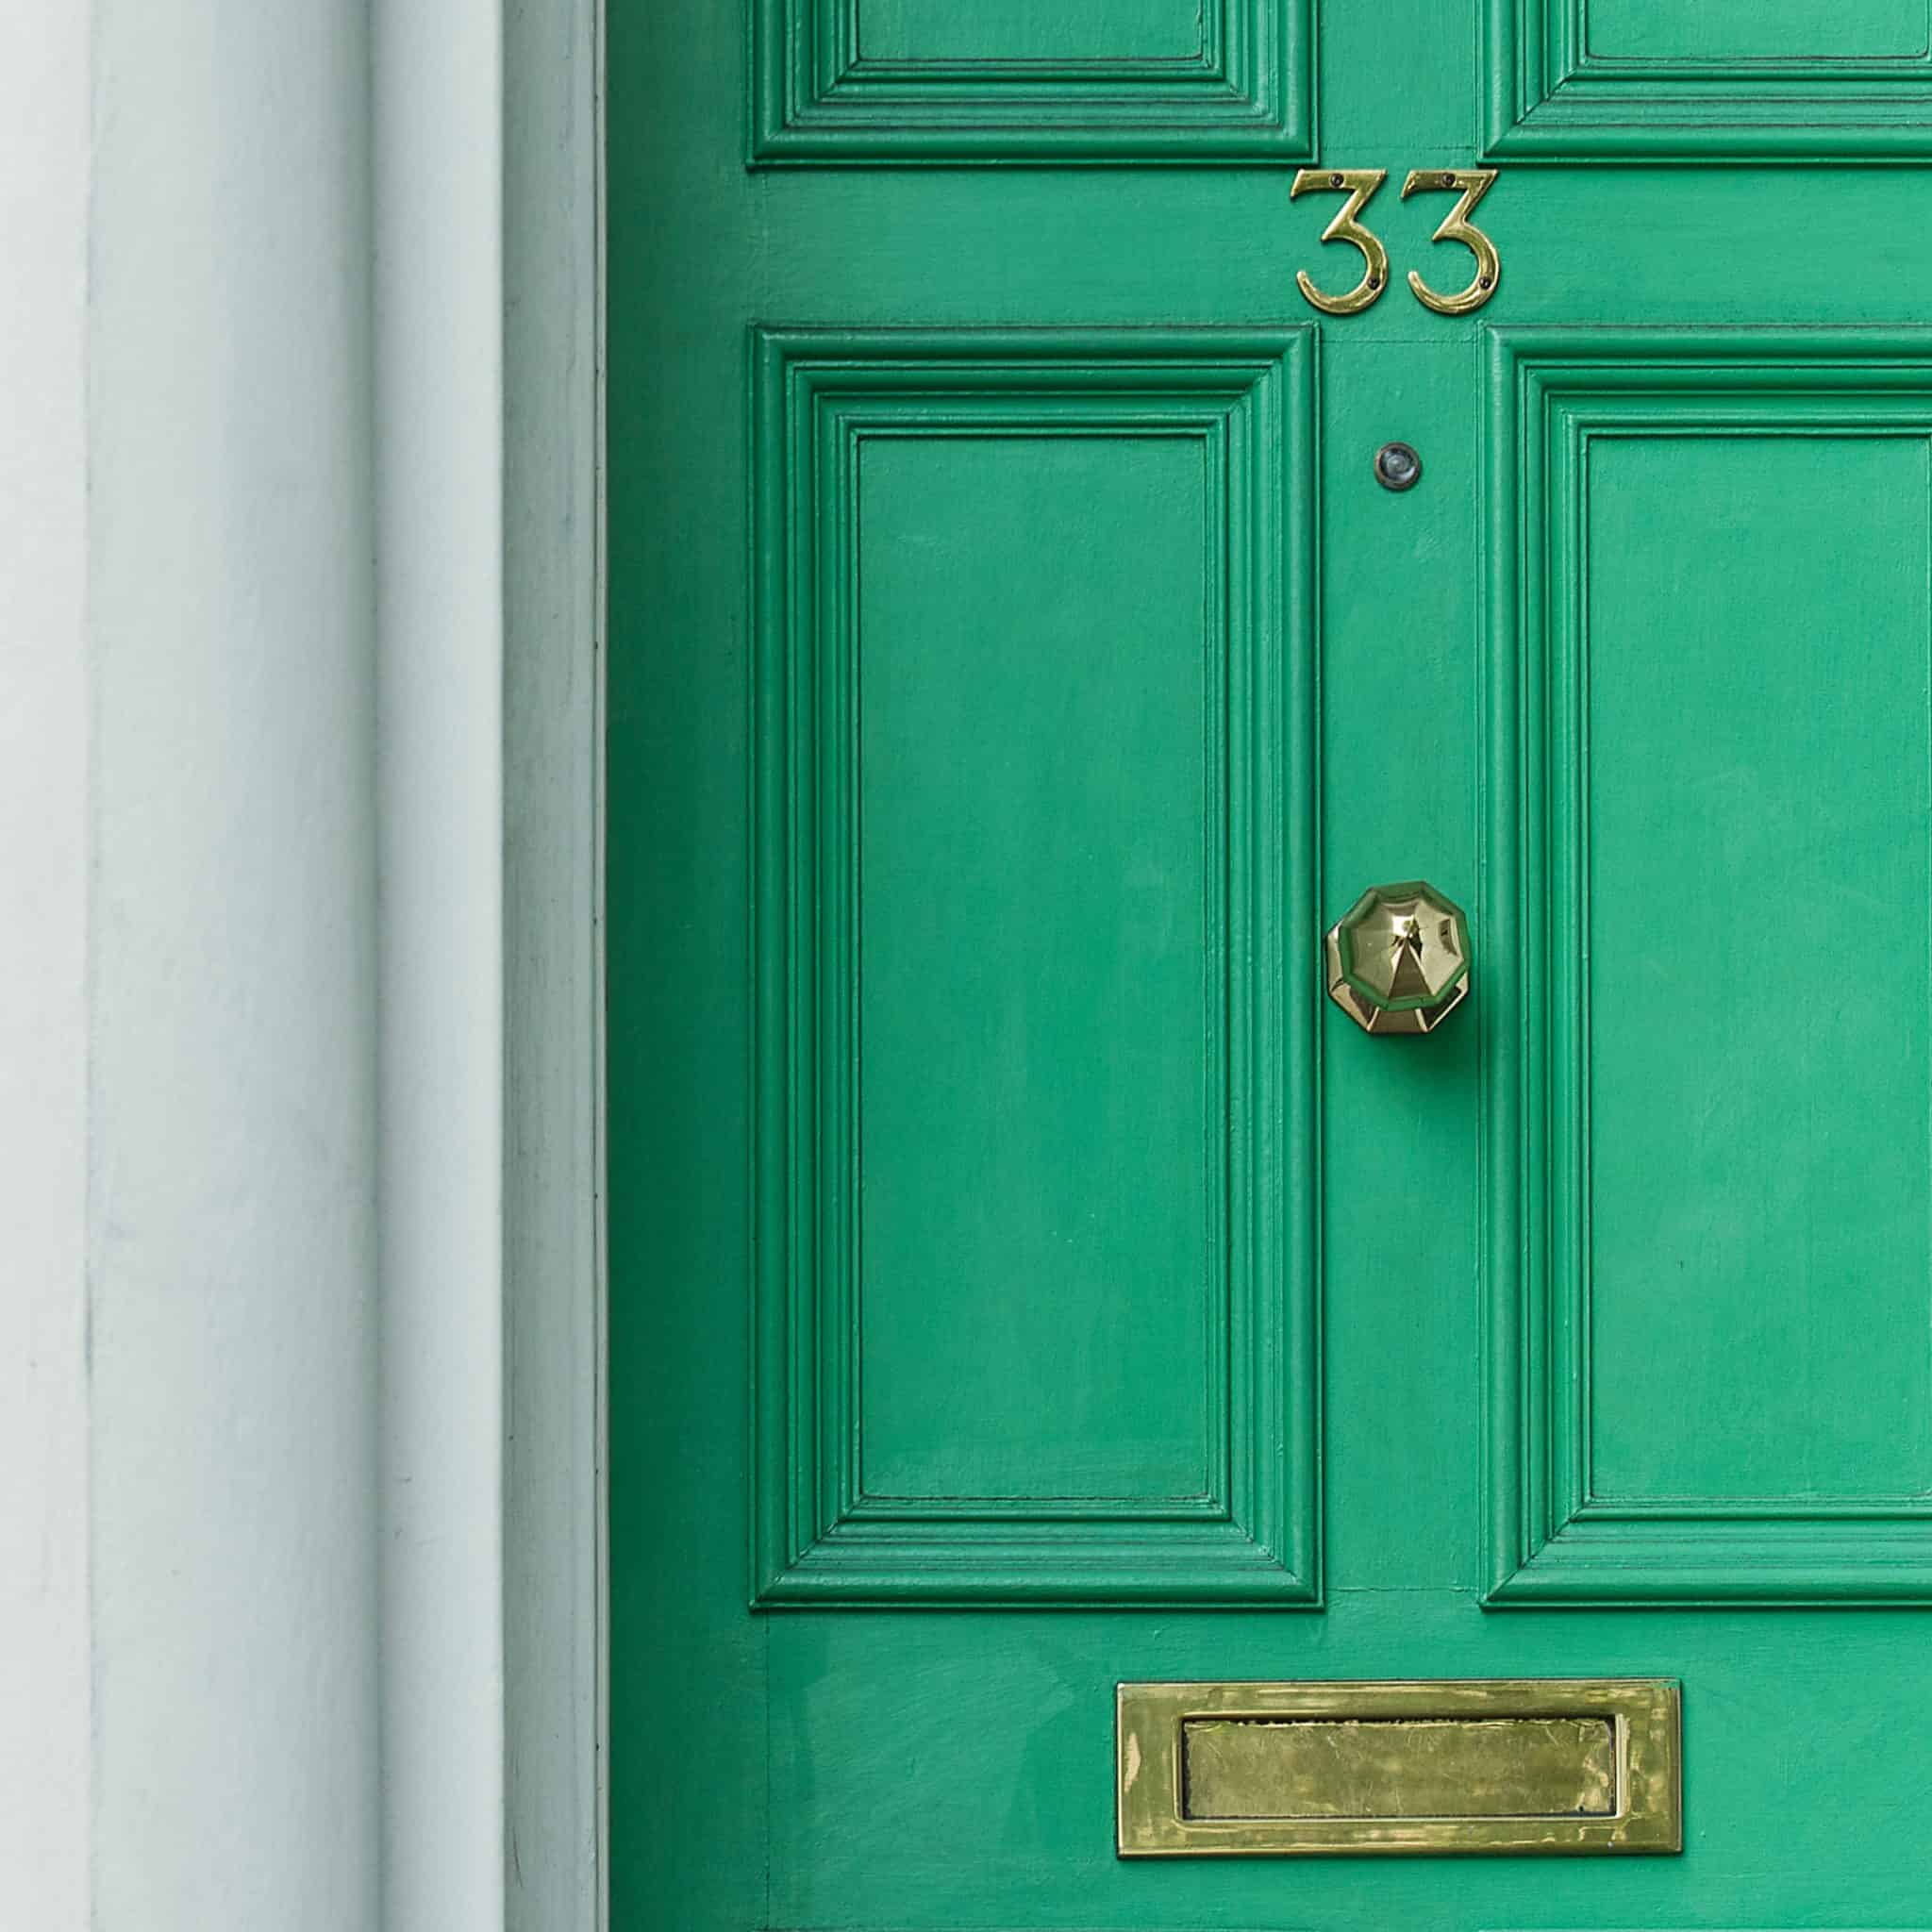 Painting interior and exterior doors and windows.